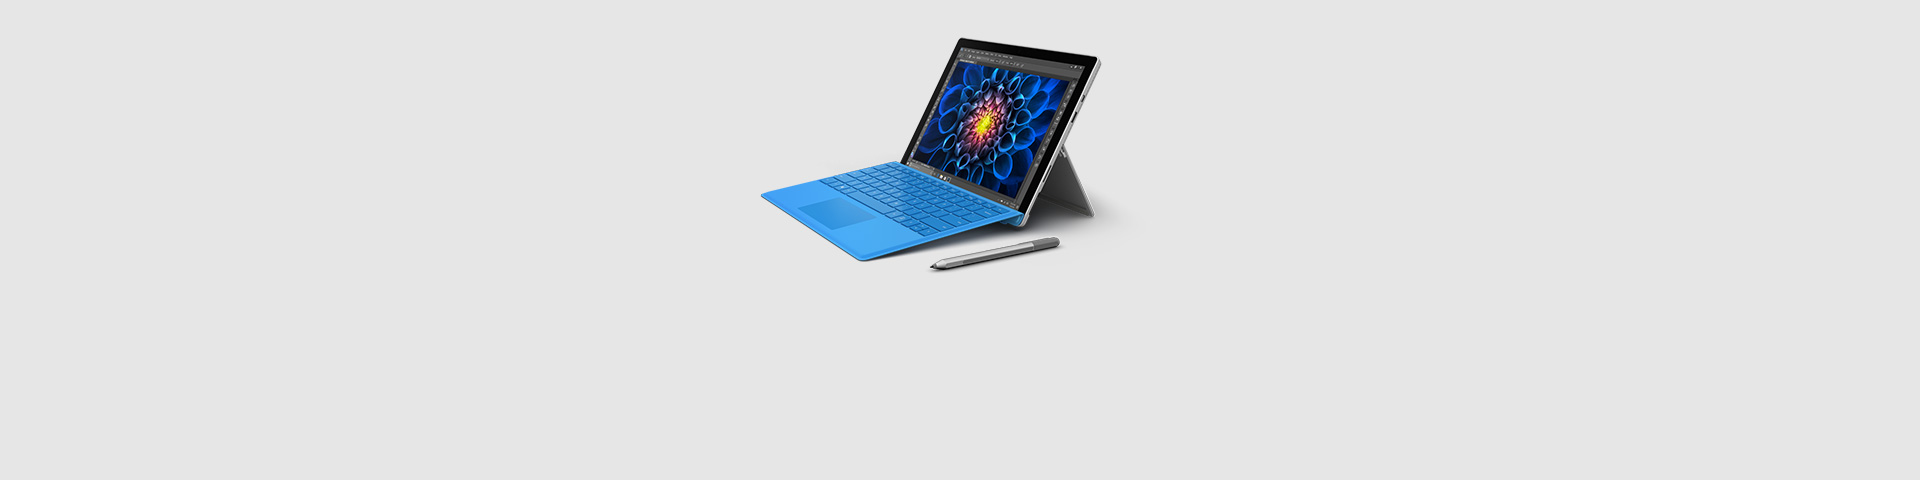 Un dispositivo Surface Pro 4